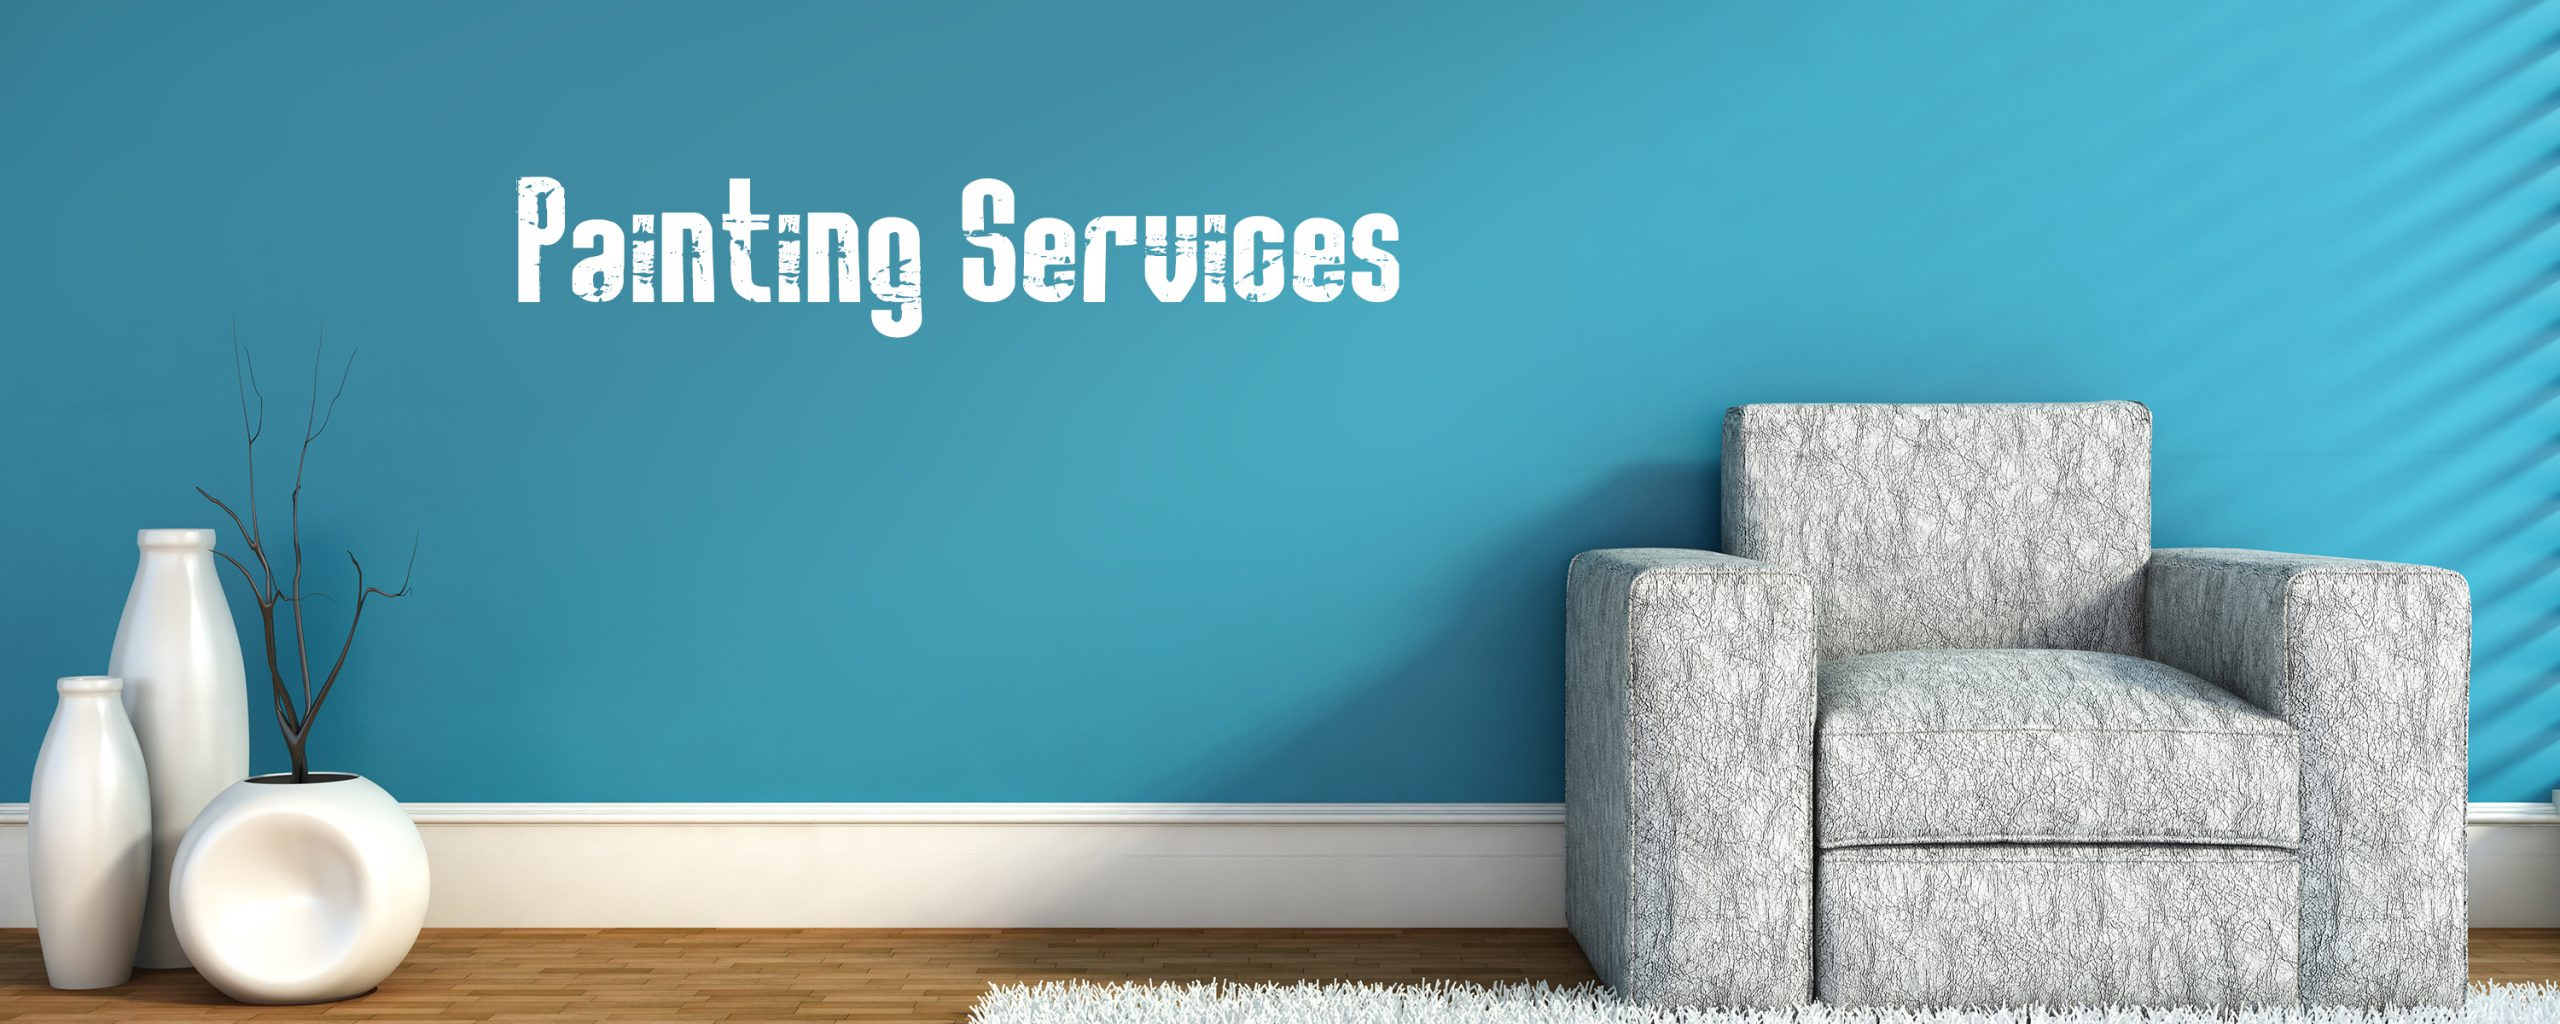 painting services|Painting Contractor in noida